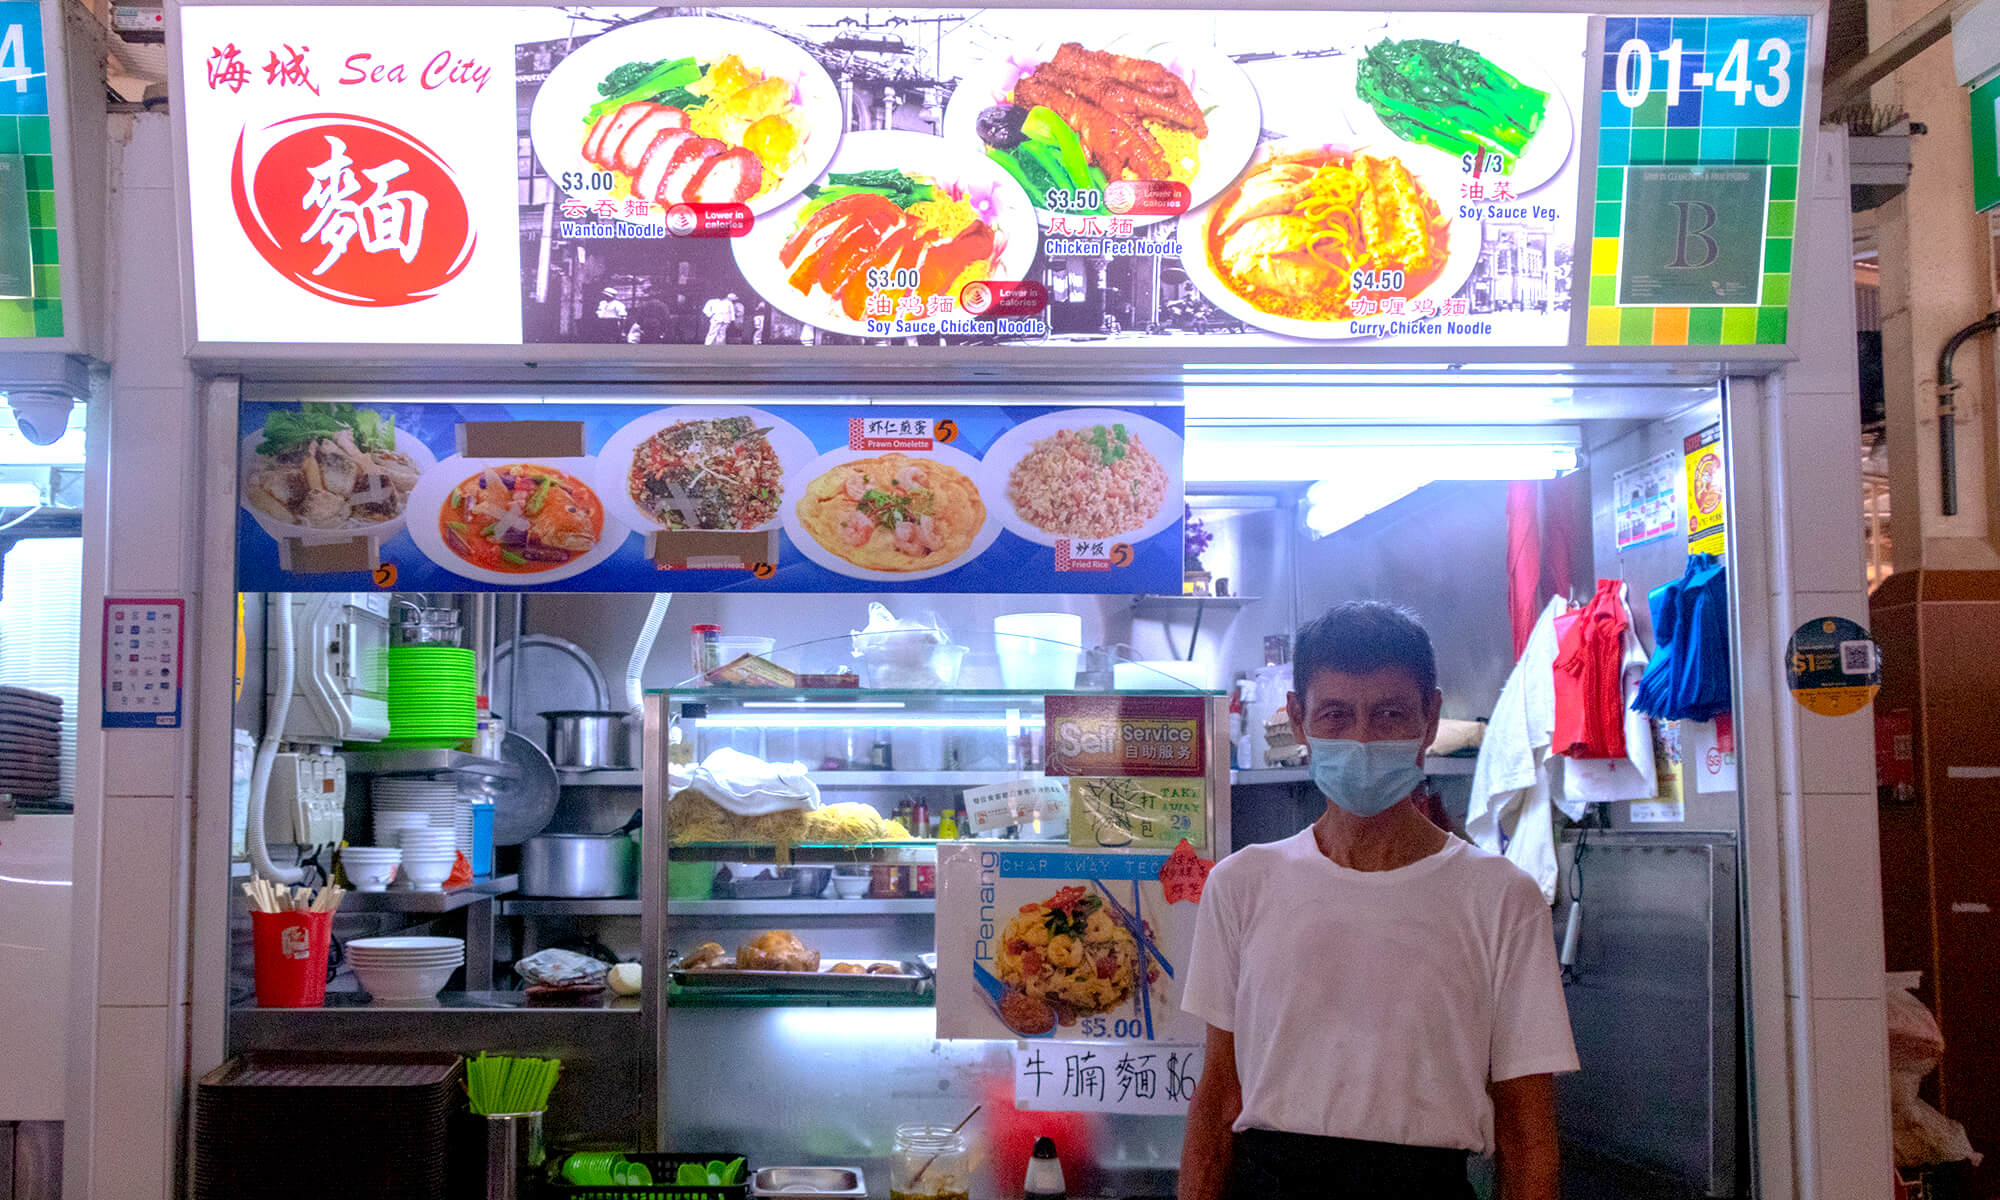 Owner of sea city wanton noodles at ghim moh hawker centre